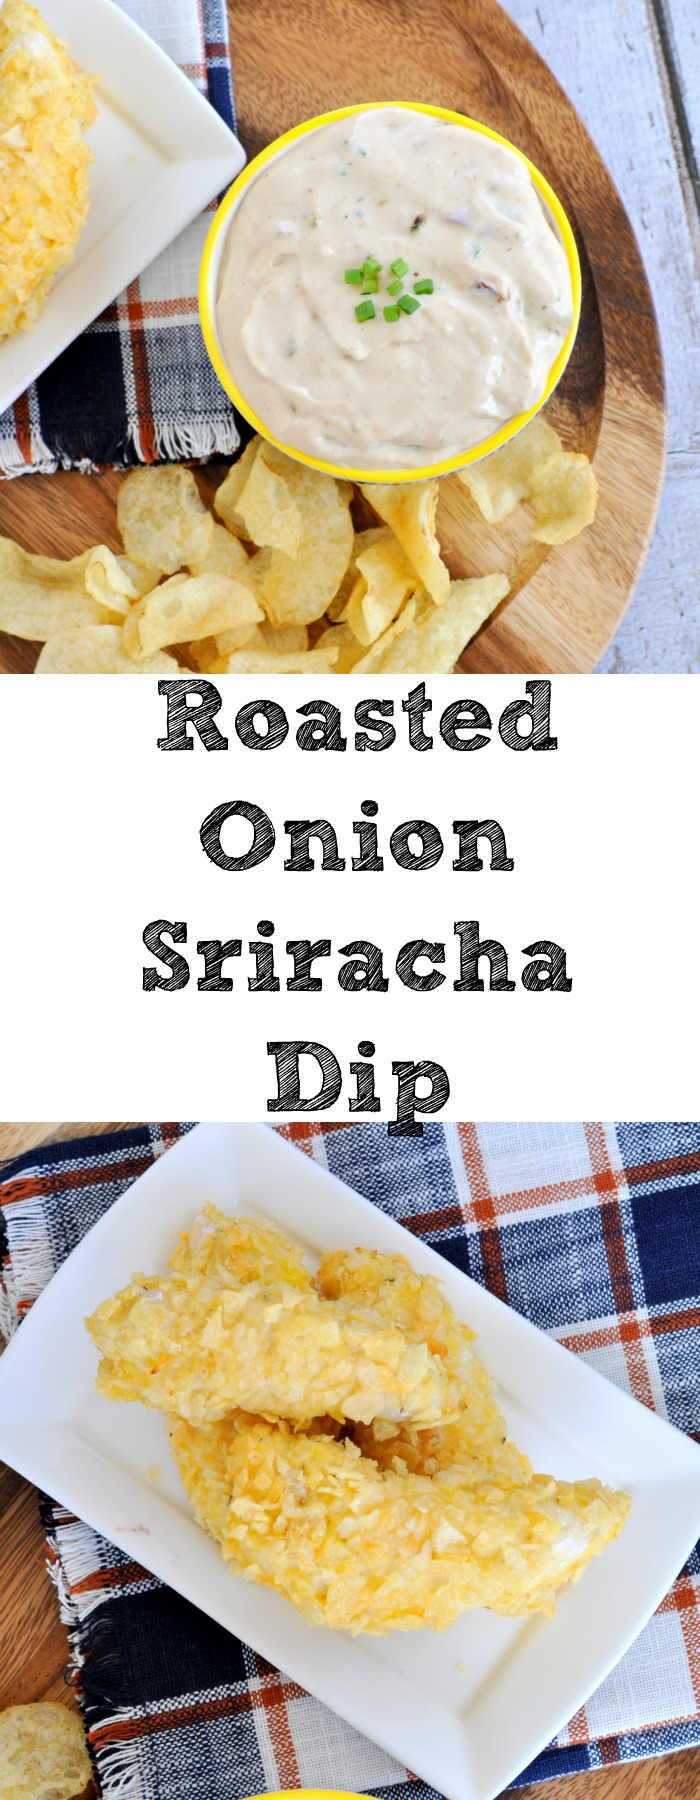 Roasted Onion Sriracha dip is the ultimate tailgating addition.